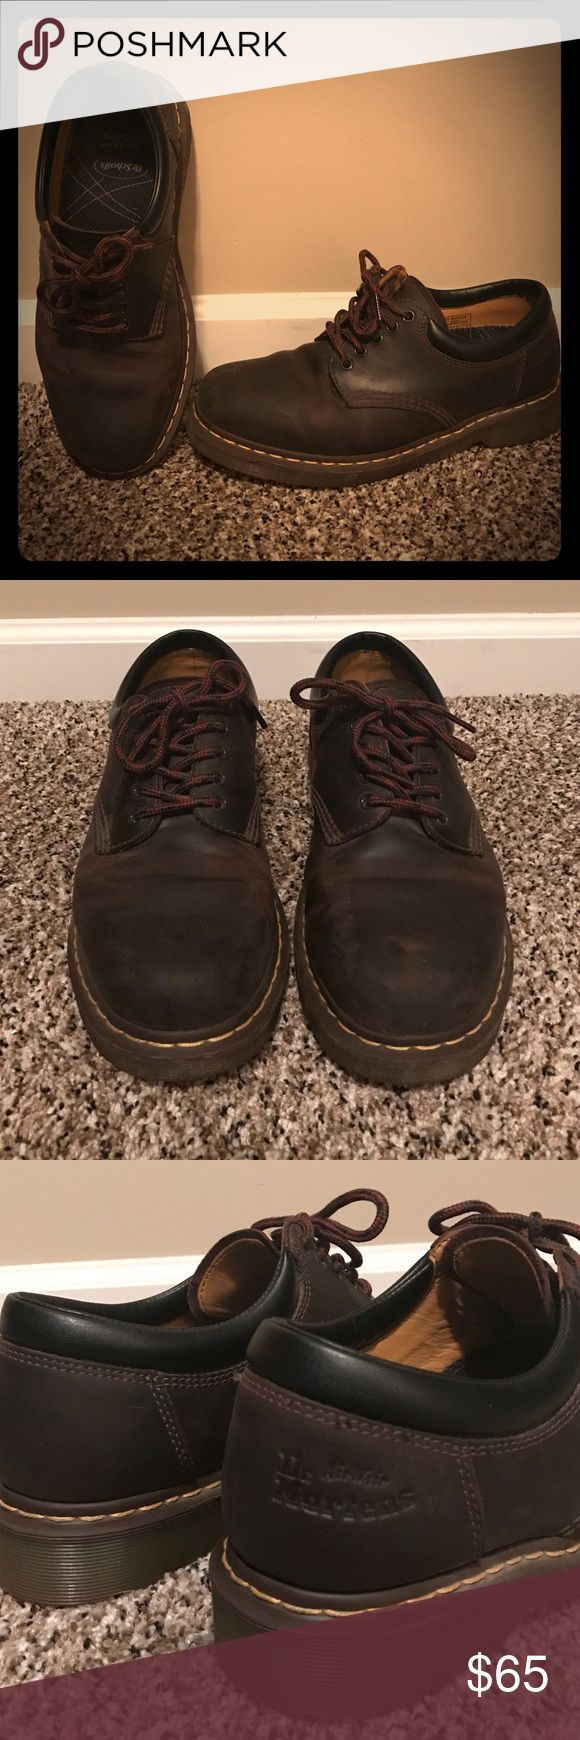 Dr Marten Men's Shoes Mens Dr Marten 8053 Harvest 5 eye leather shoes. Size 10. Used but in good condition. Inserts were replaced with Dr scholls inserts for extra padding but can be changed. Great shoe dressy or casual. Dr. Martens Shoes Oxfords & Derbys